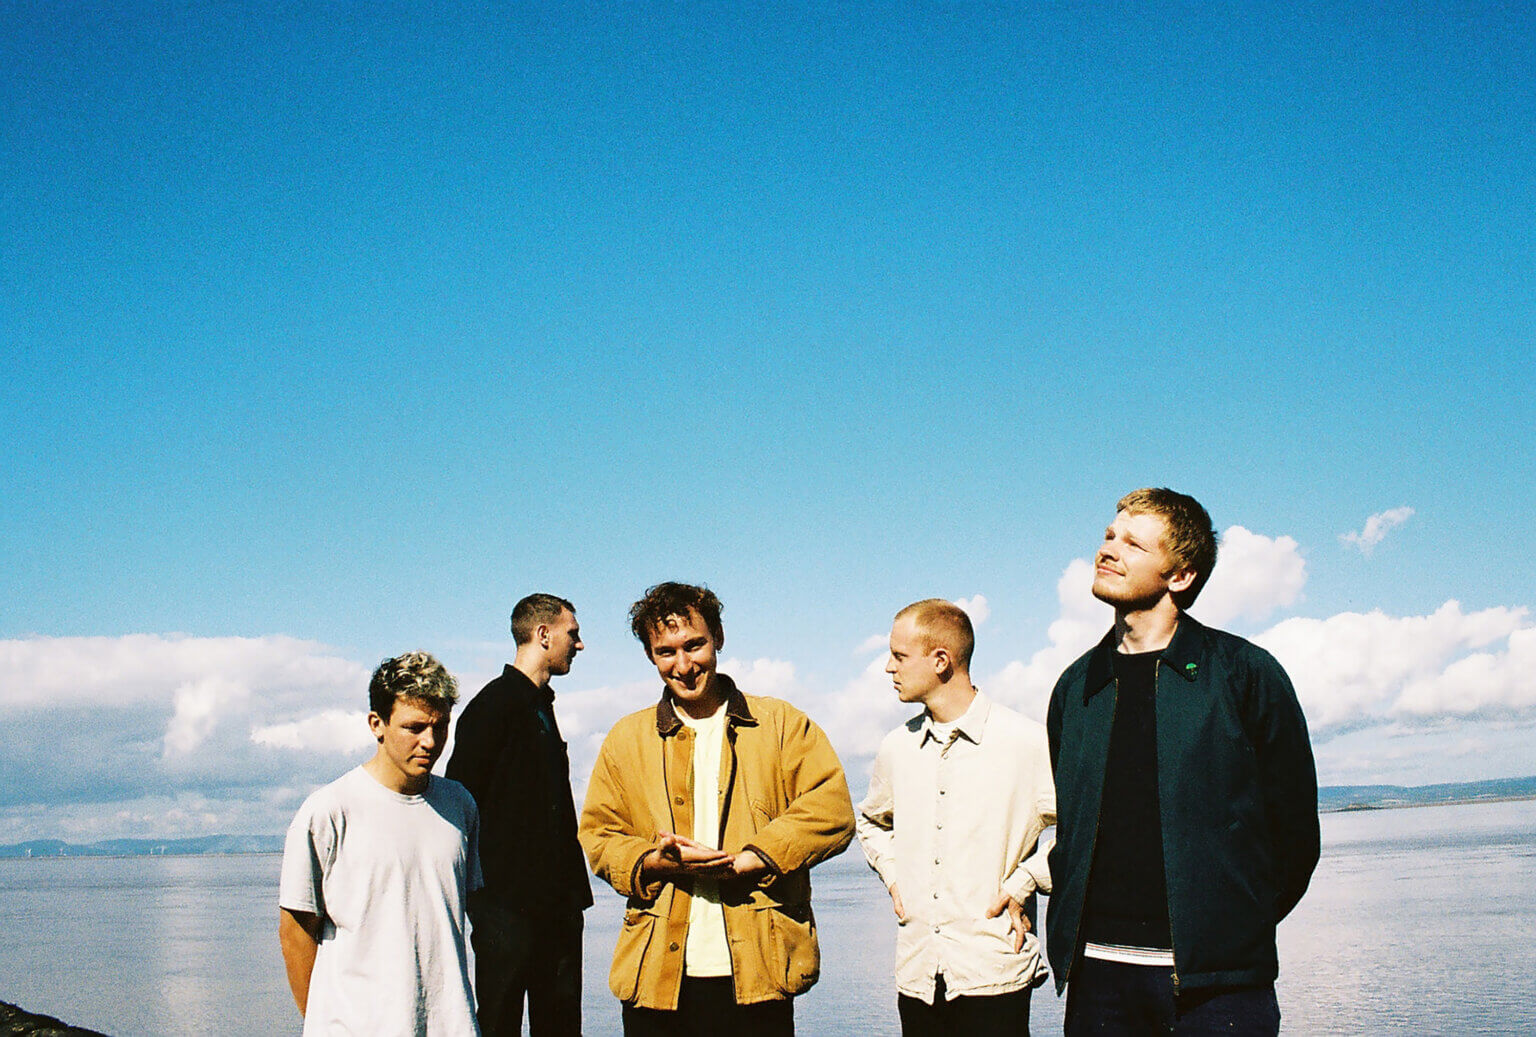 Squid have announced their debut LP Bright Green Field, will arrive on May 7th via Warp Records. Along with the news, the UK group